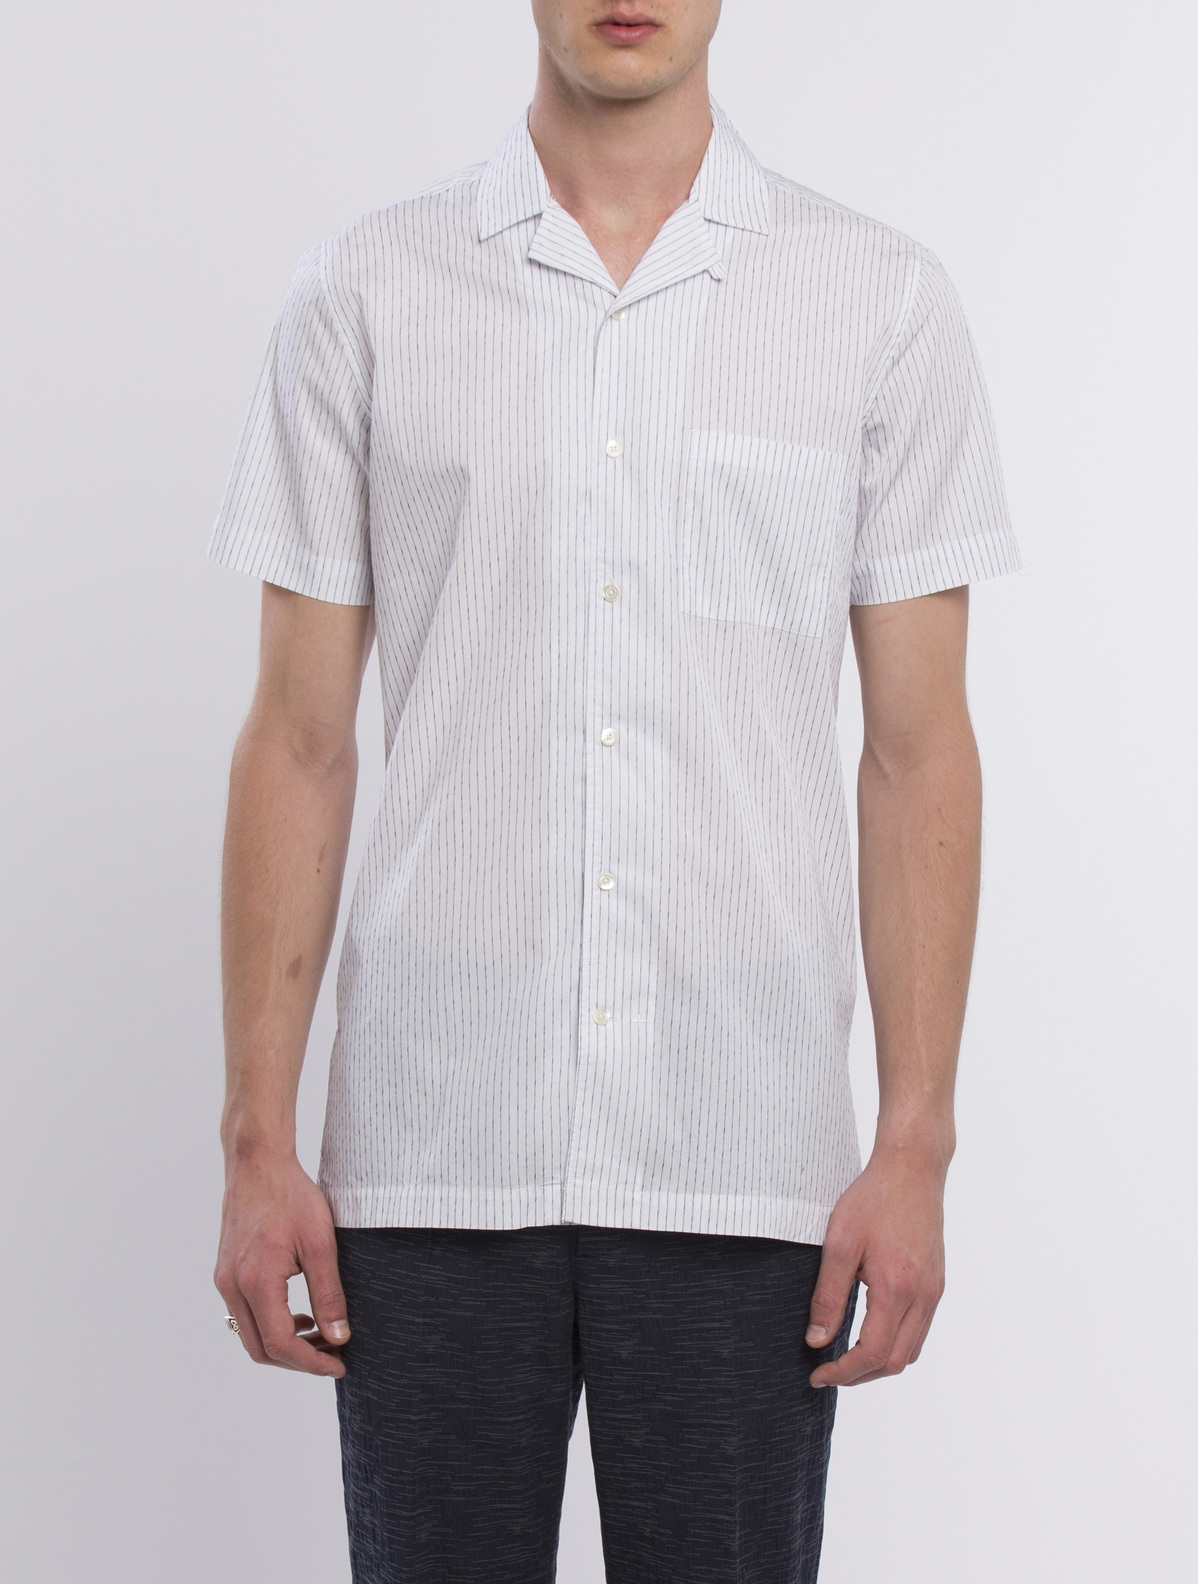 SHIRT  HILO - Navy stripes